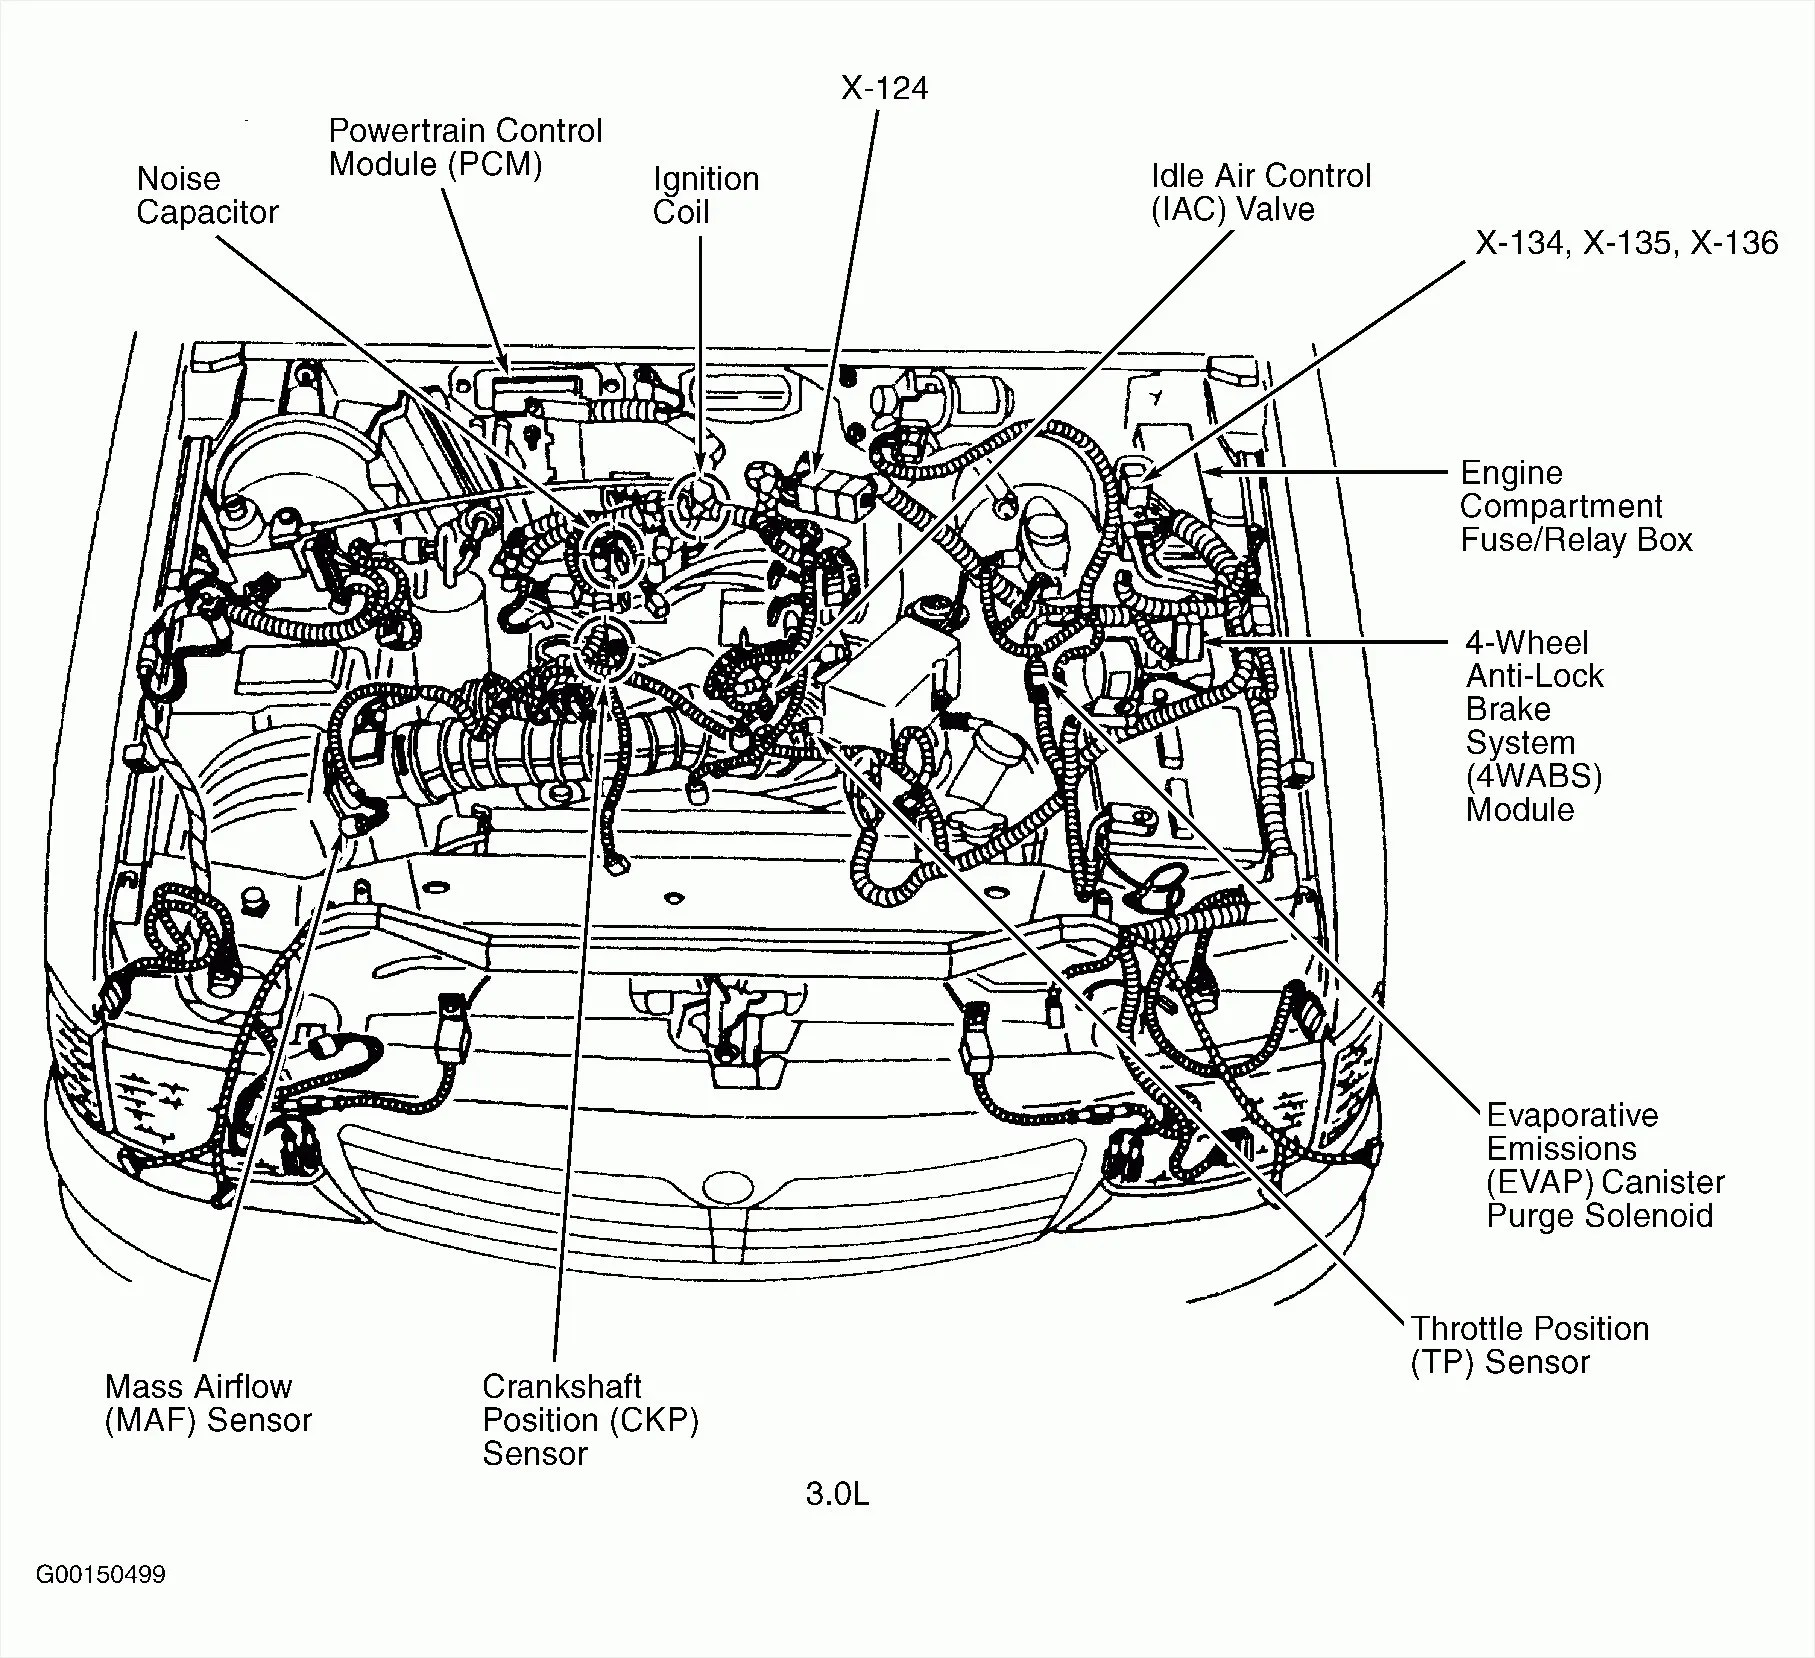 hight resolution of 1989 toyota 22r engine diagram wiring diagram used 1986 toyota 22r engine distributor moreover toyota 22re engine diagram